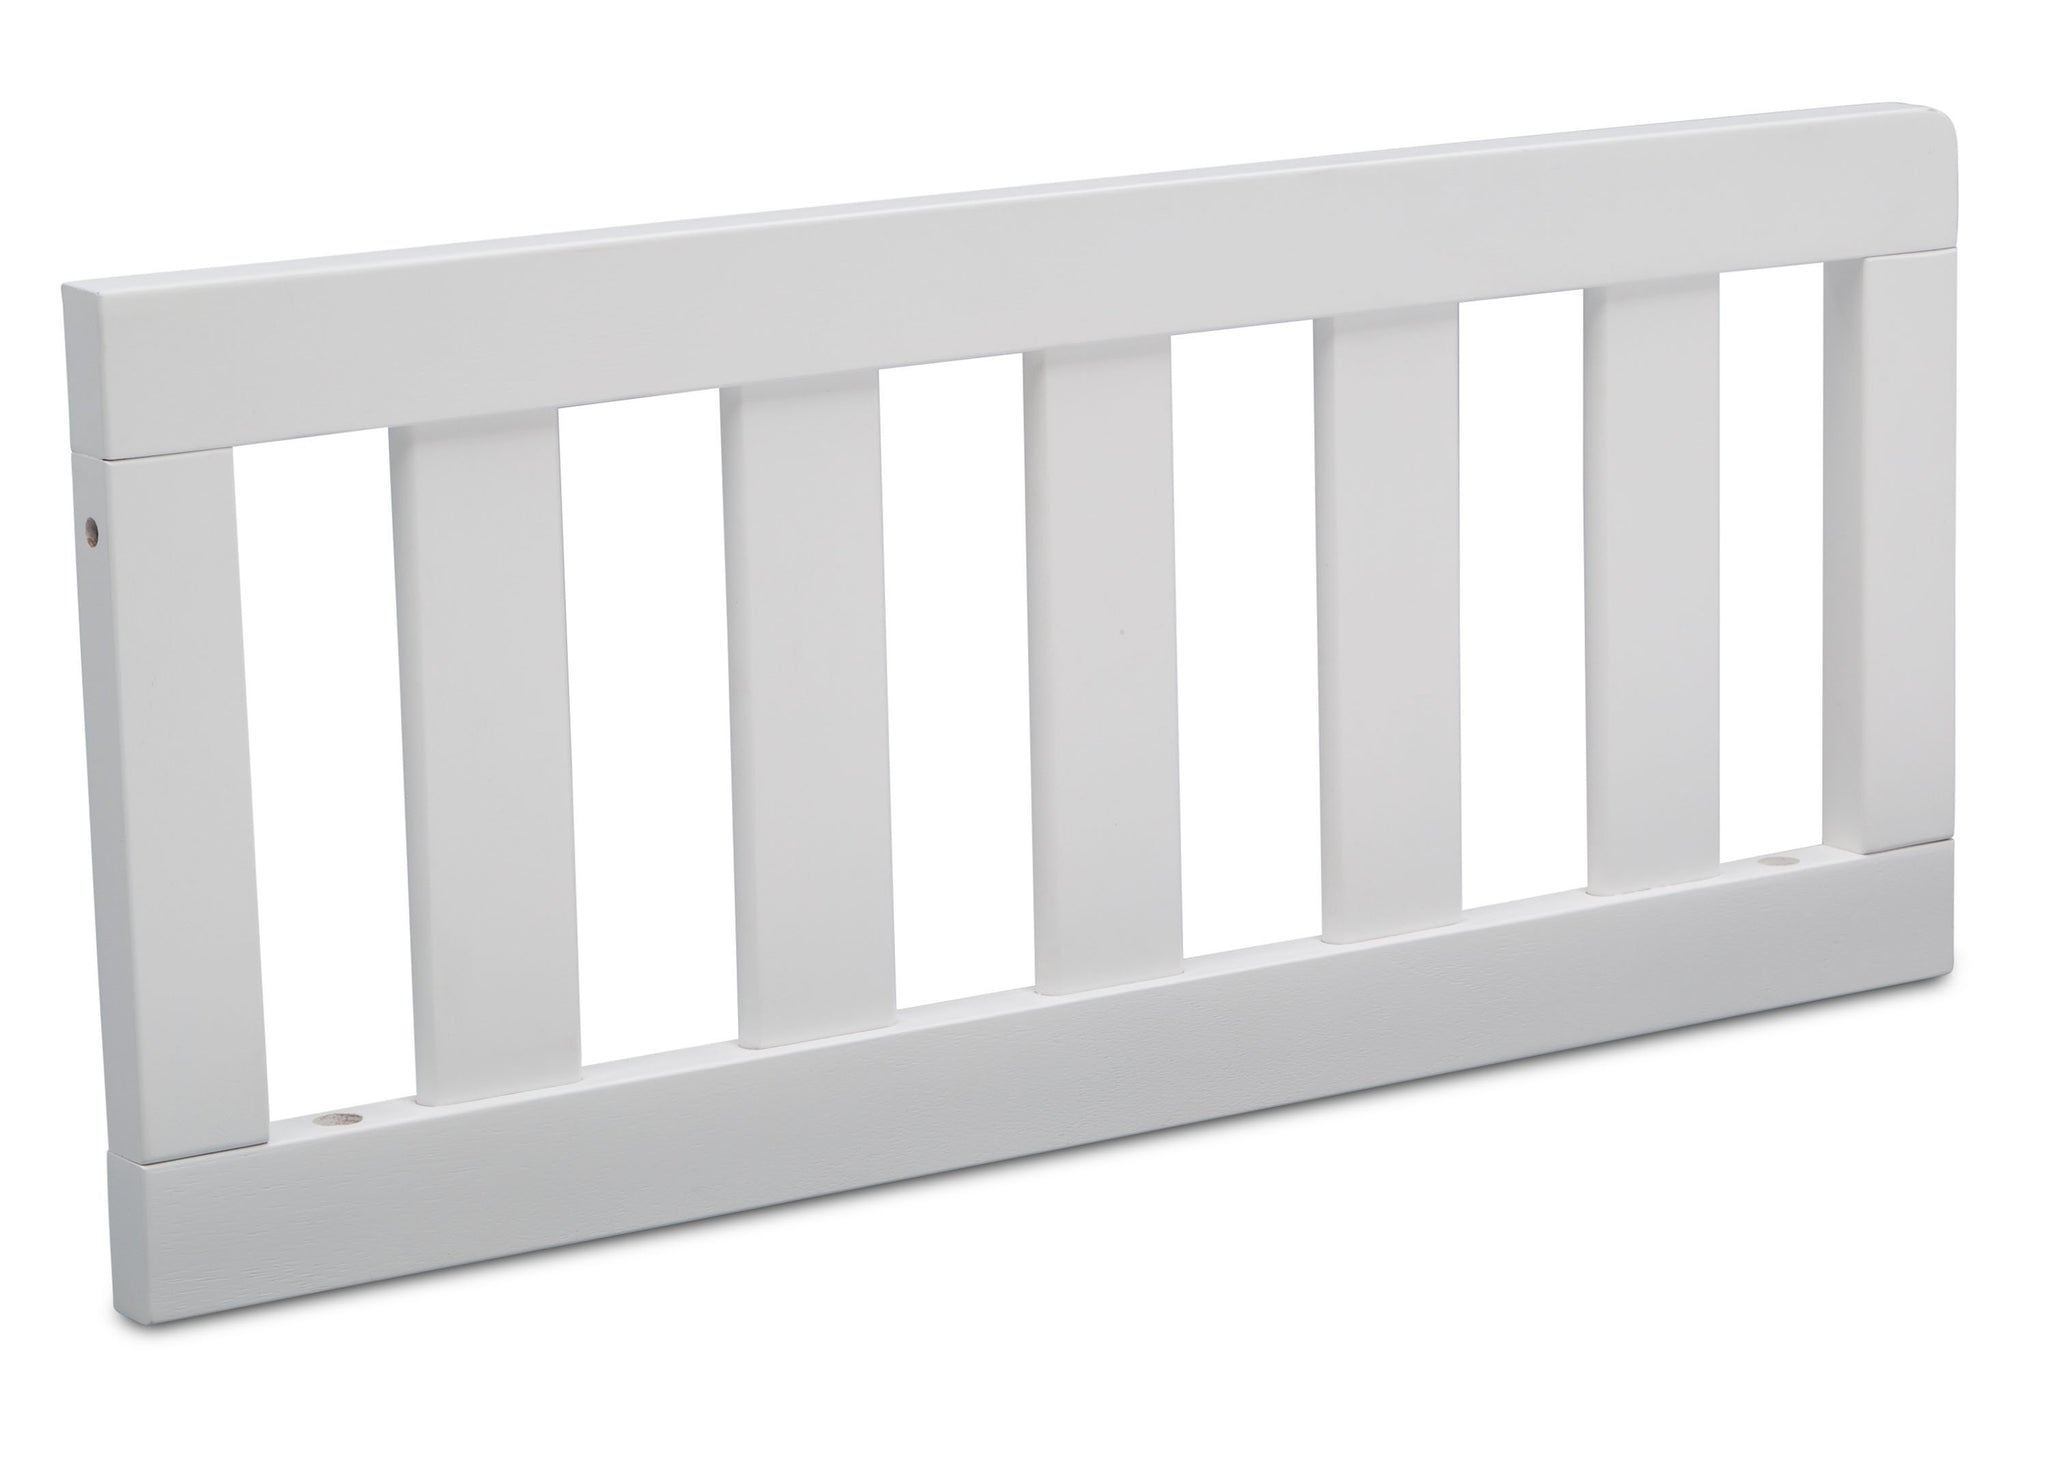 Serta Daybed/Toddler Guardrail Kit (707726) Bianca (130) Angle b4b